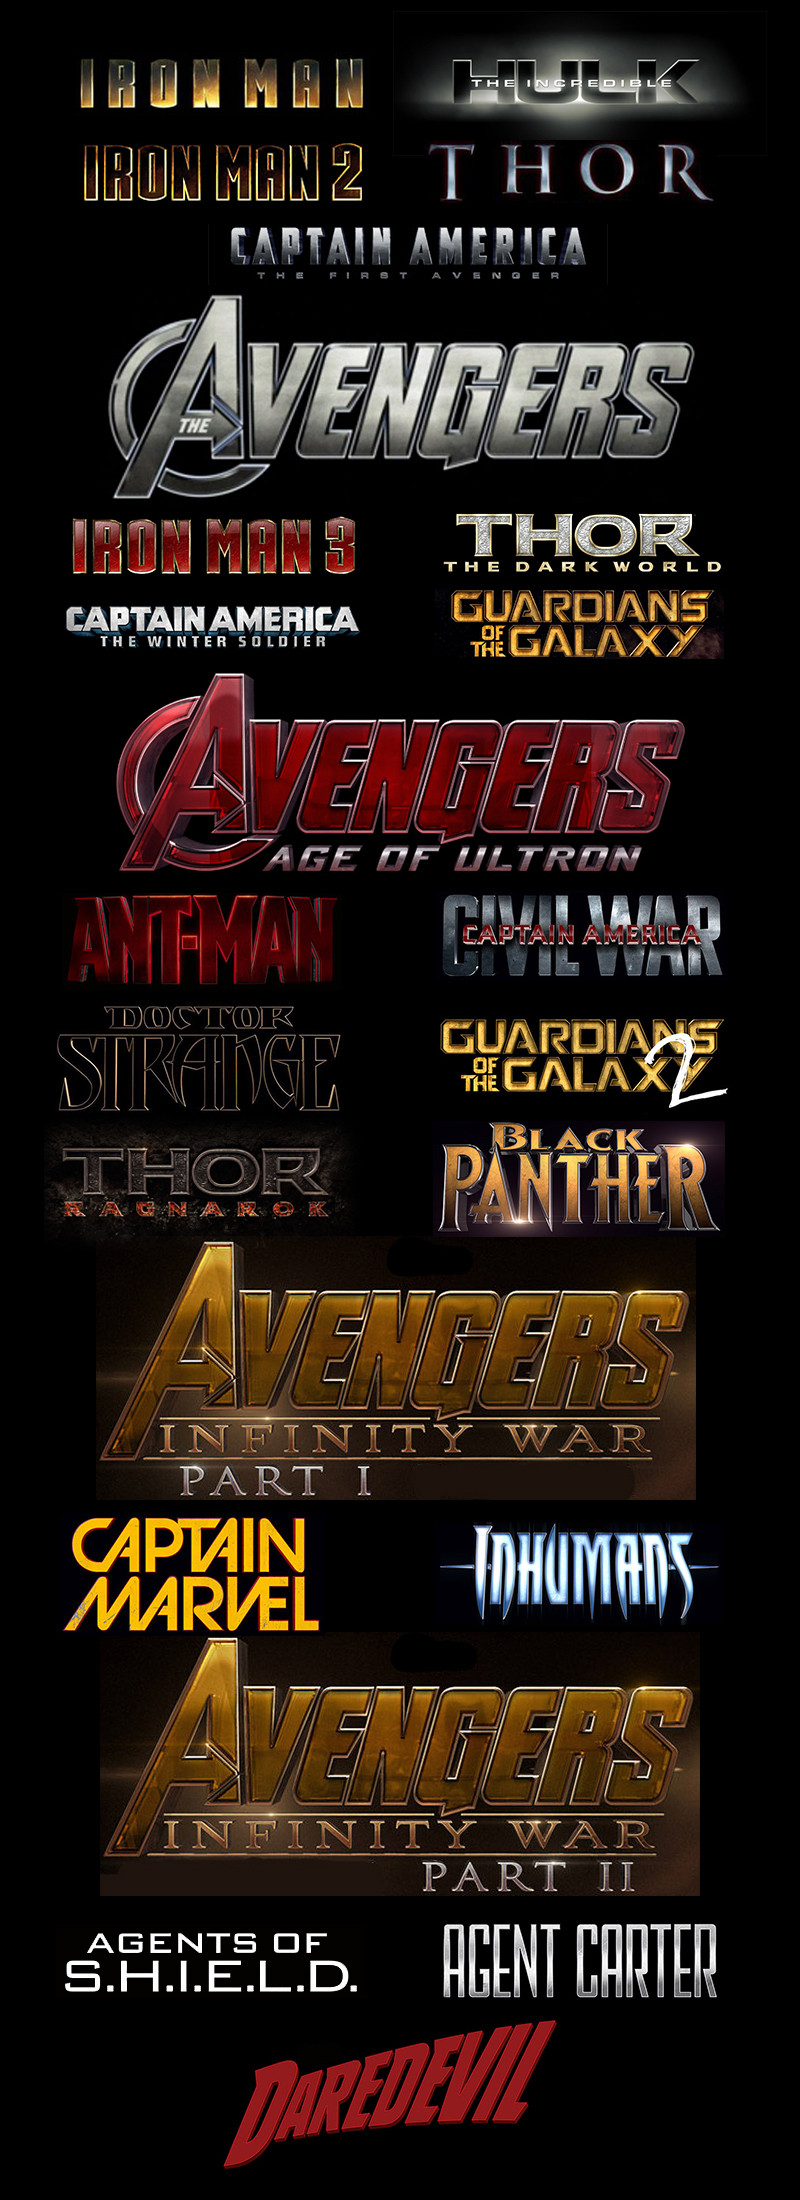 The Movies of Marvel.jpg